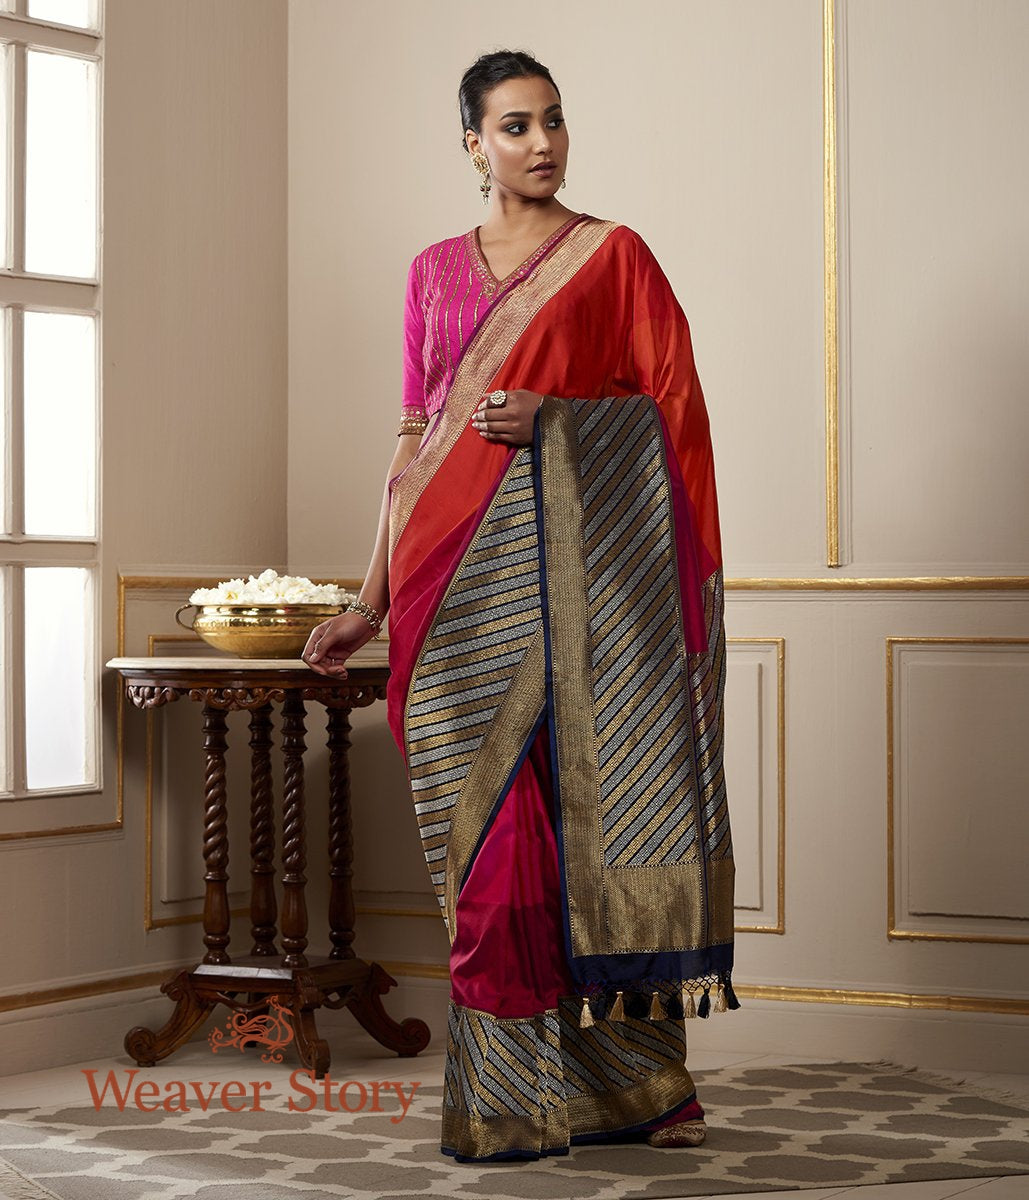 Handwoven Red Orange and Pink Rangkaat Saree with Kadhwa Border and Pallu in Blue